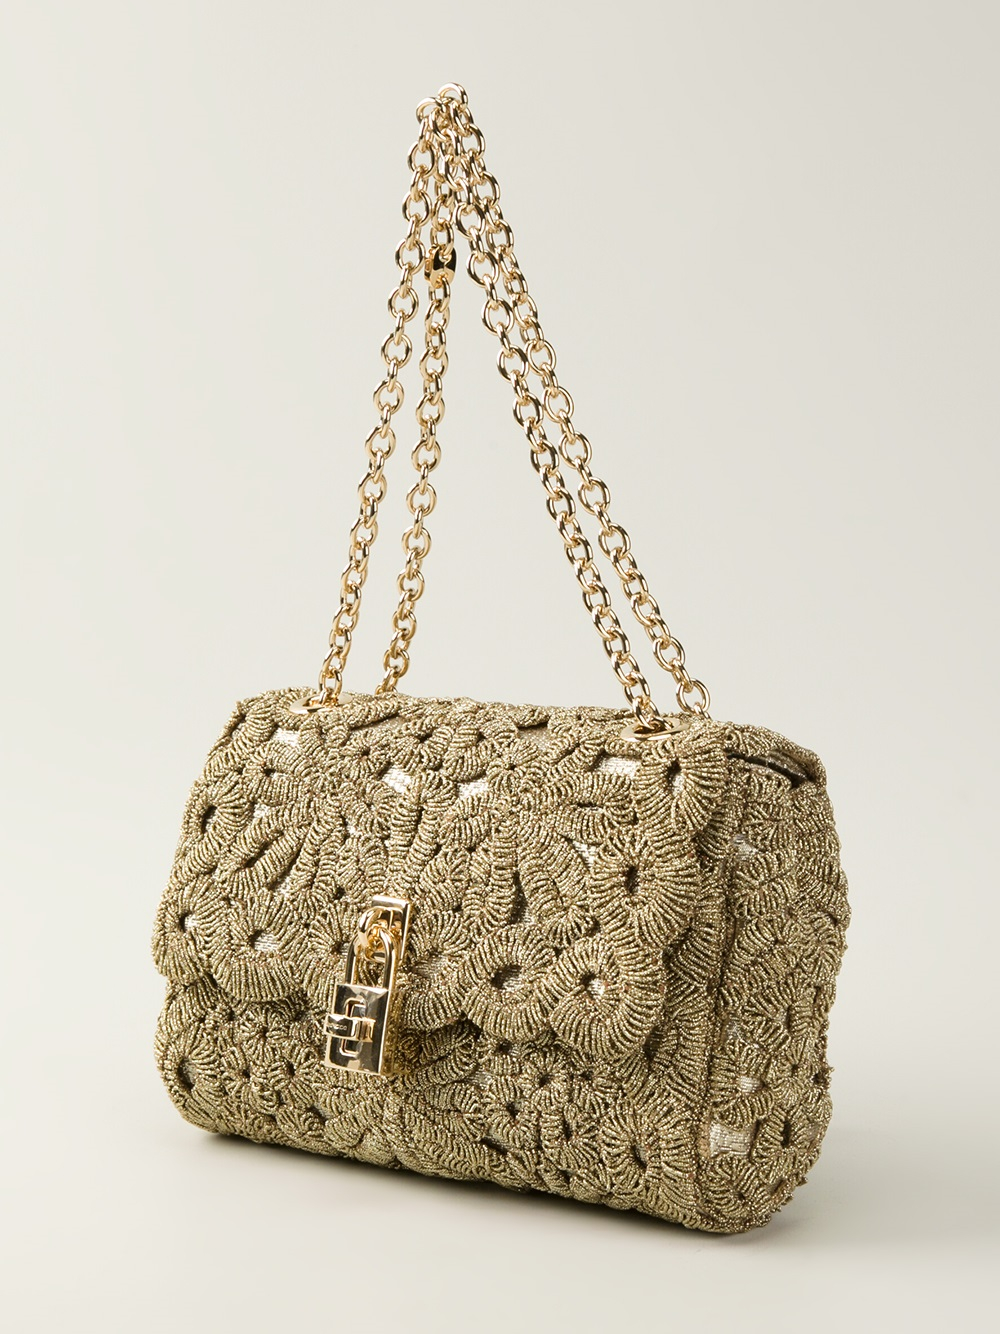 Dolce & gabbana Crochet Padlock Shoulder Bag in Metallic Lyst